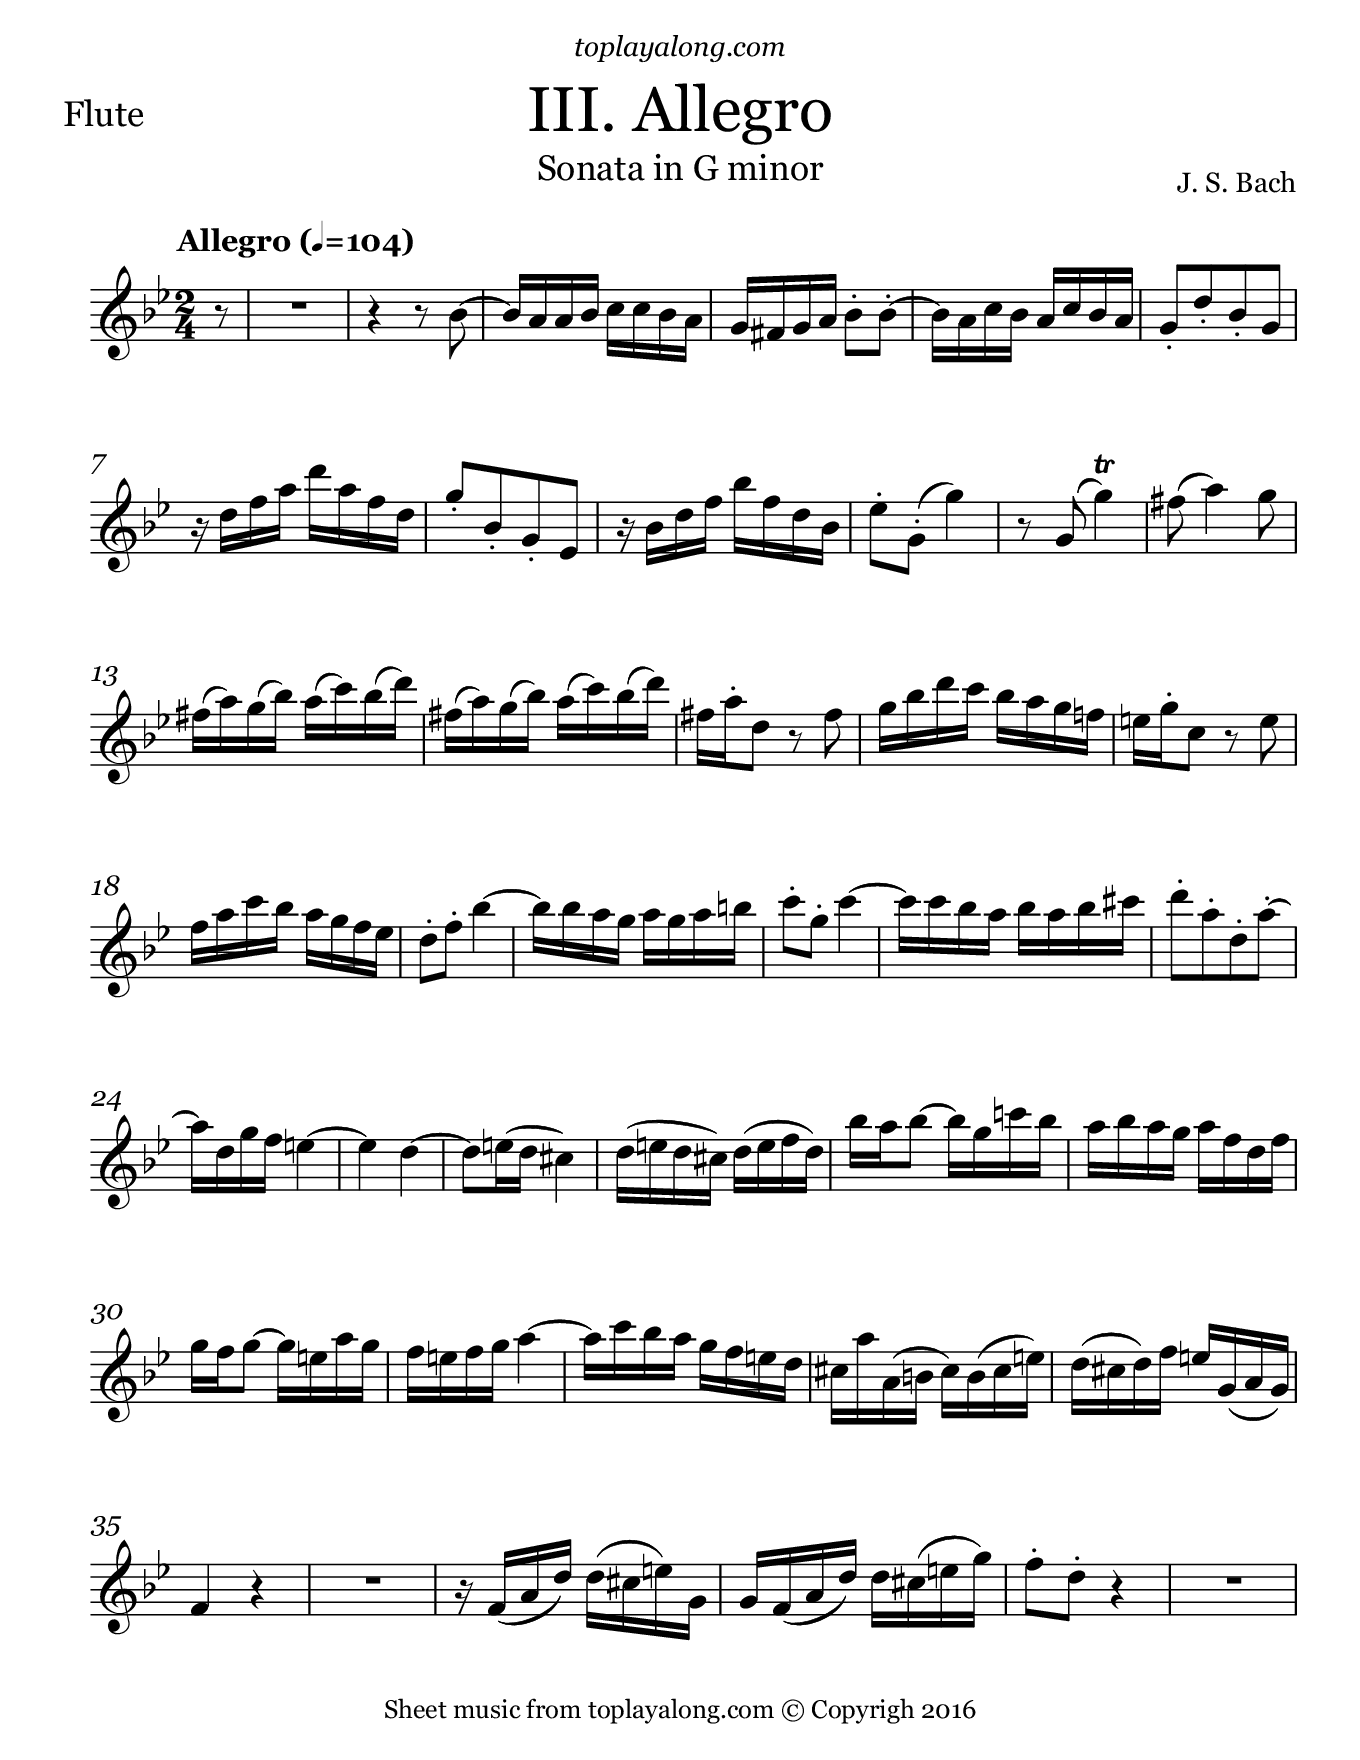 Sonata in G minor BWV 1020 (III. Allegro) by J. S. Bach. Sheet music for Flute, page 1.